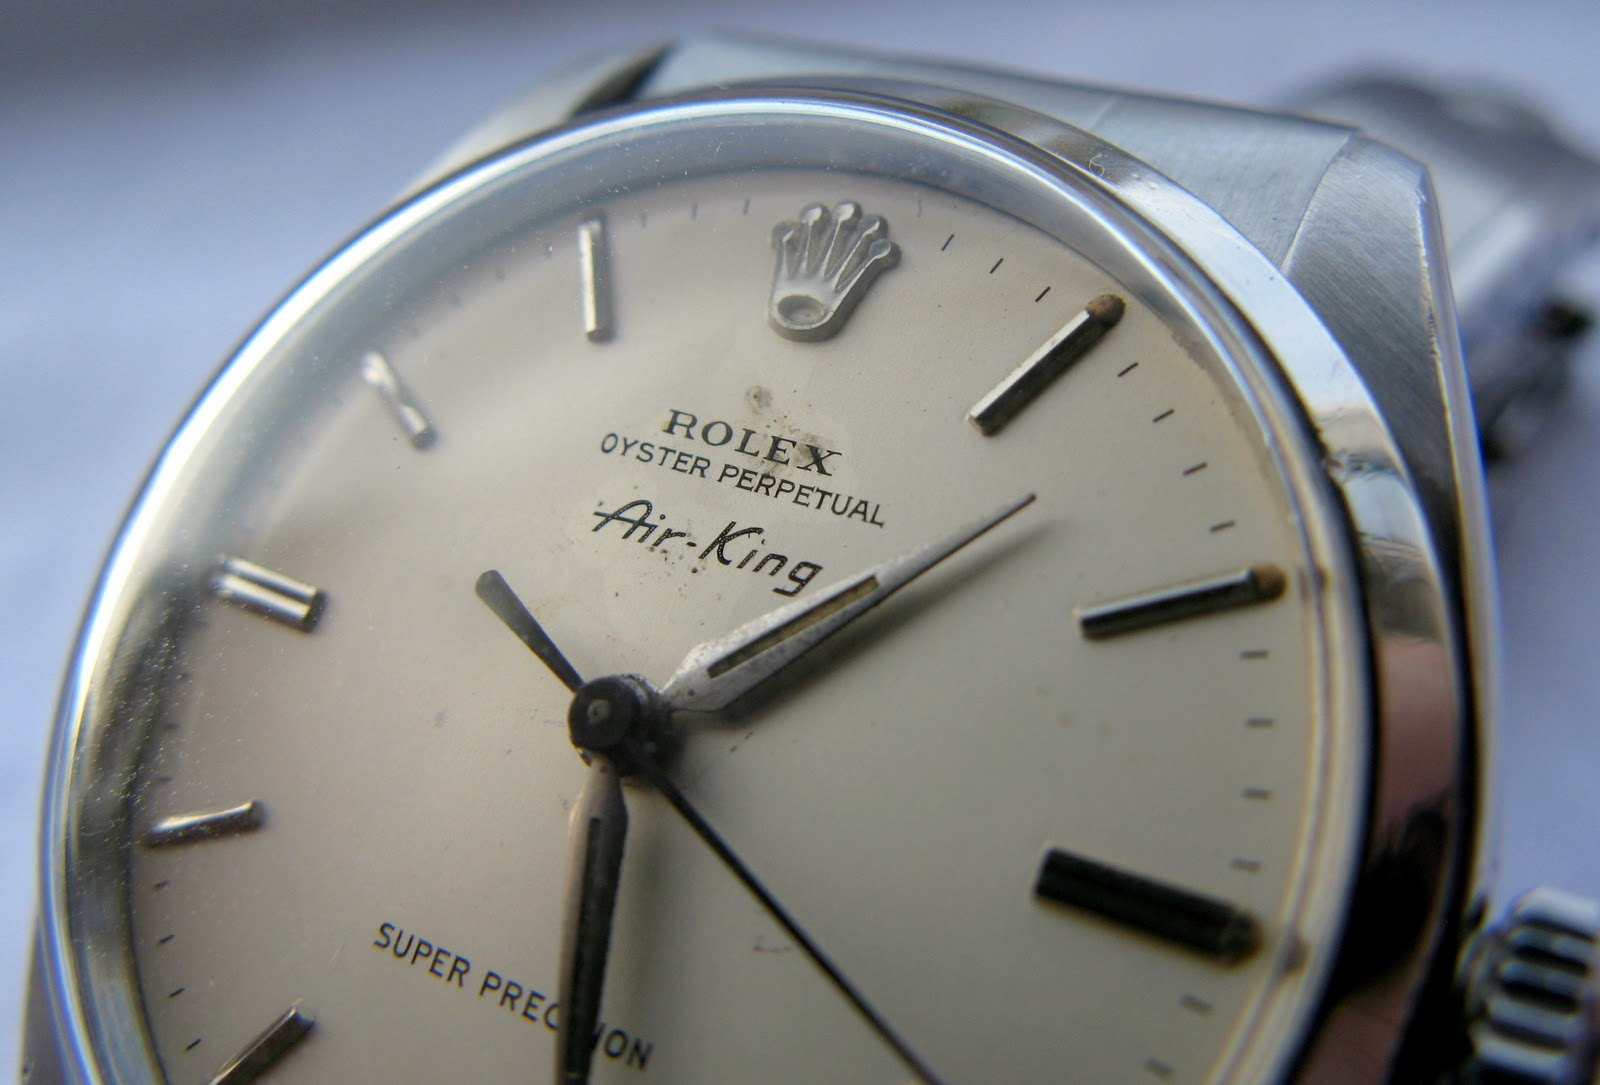 Andy B Vintage Watches 1959 Rolex Oyster Perpetual Air